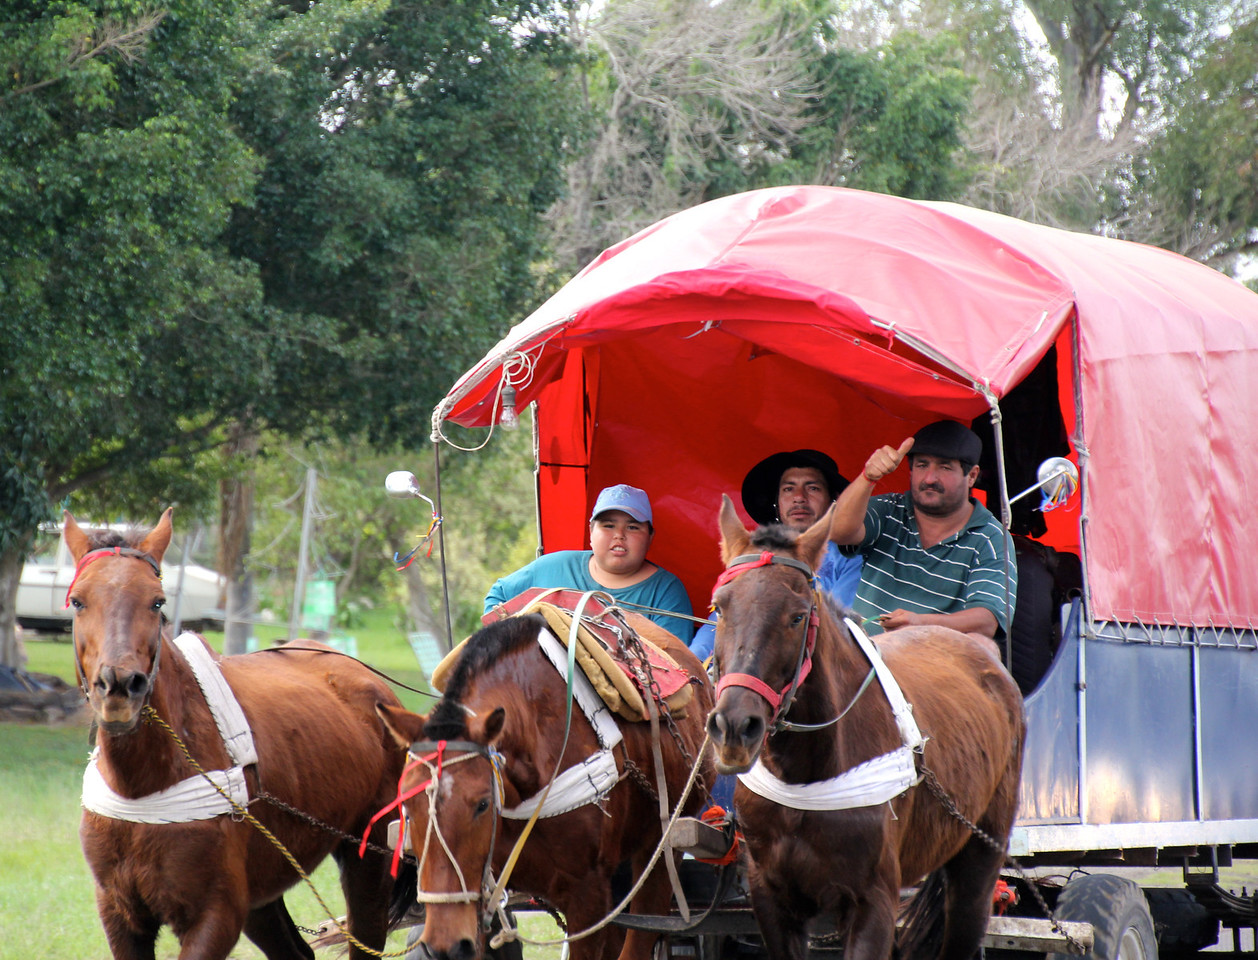 On Day 59 we starting working toward Puerto Igusau. Along the road we passed almost 1,000 gauchos and their supporters in wagons carrying supplies. - Jay